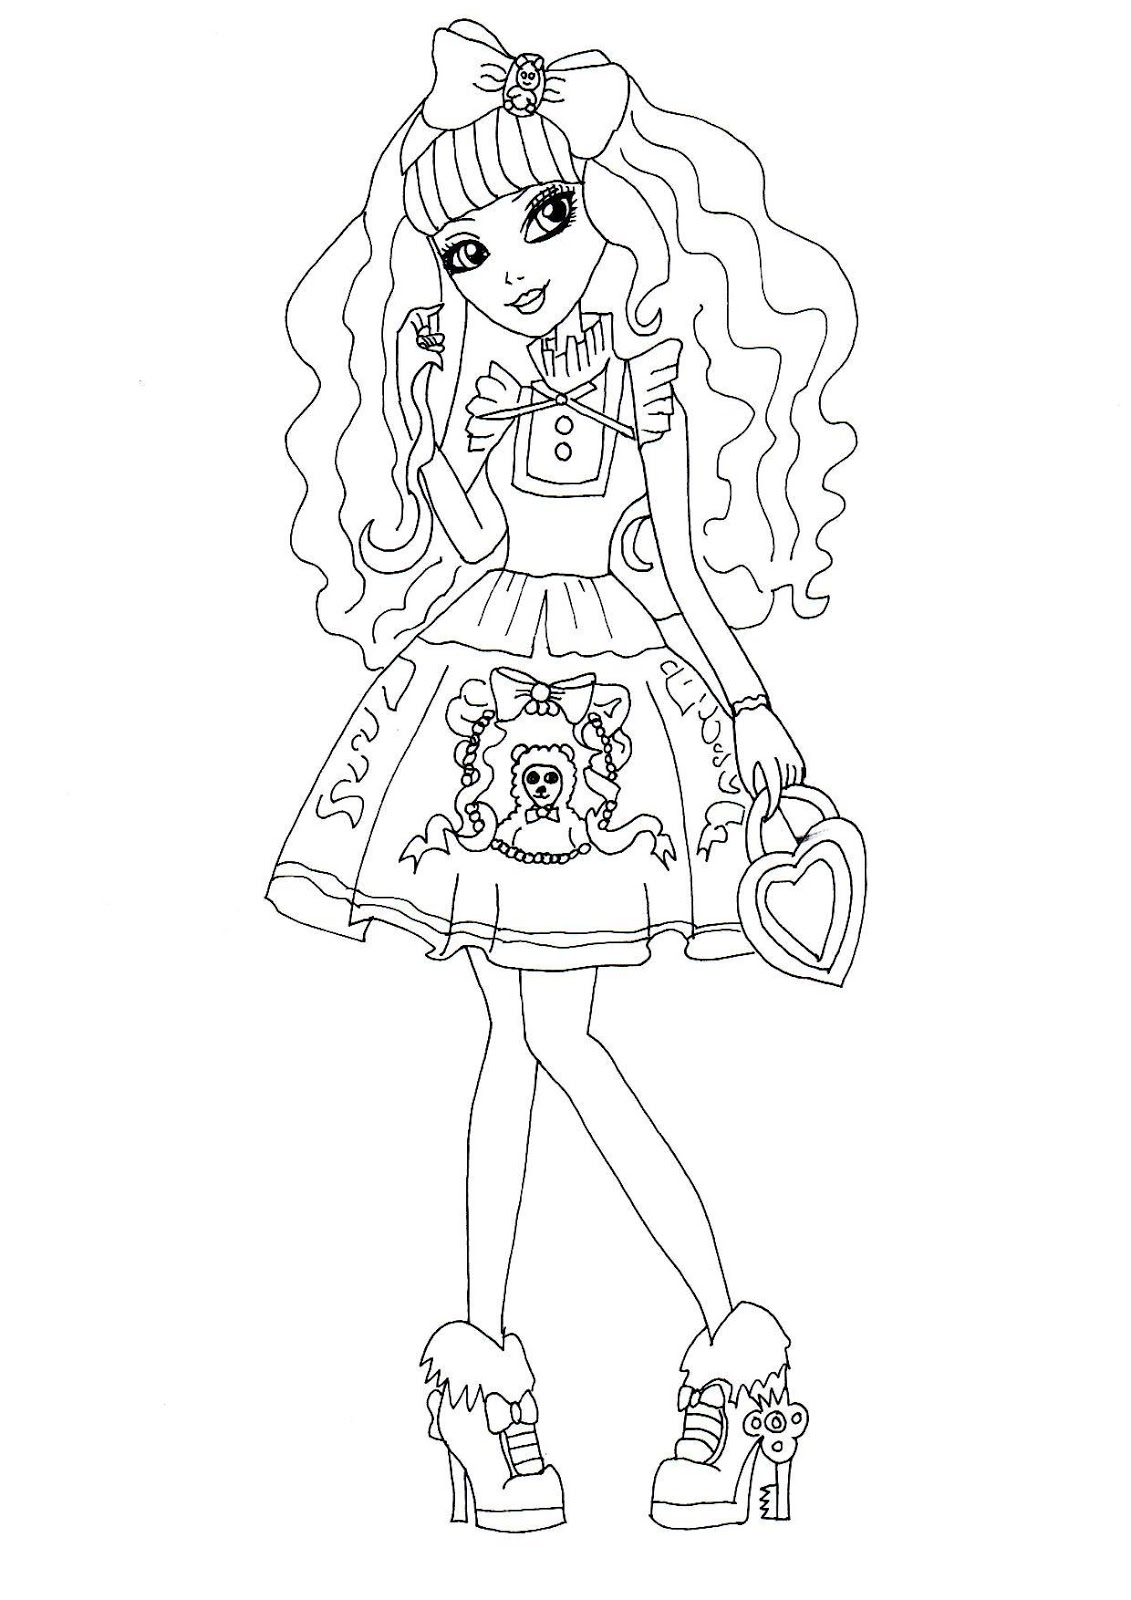 Free Printable Ever After High Coloring Pages: Blondie